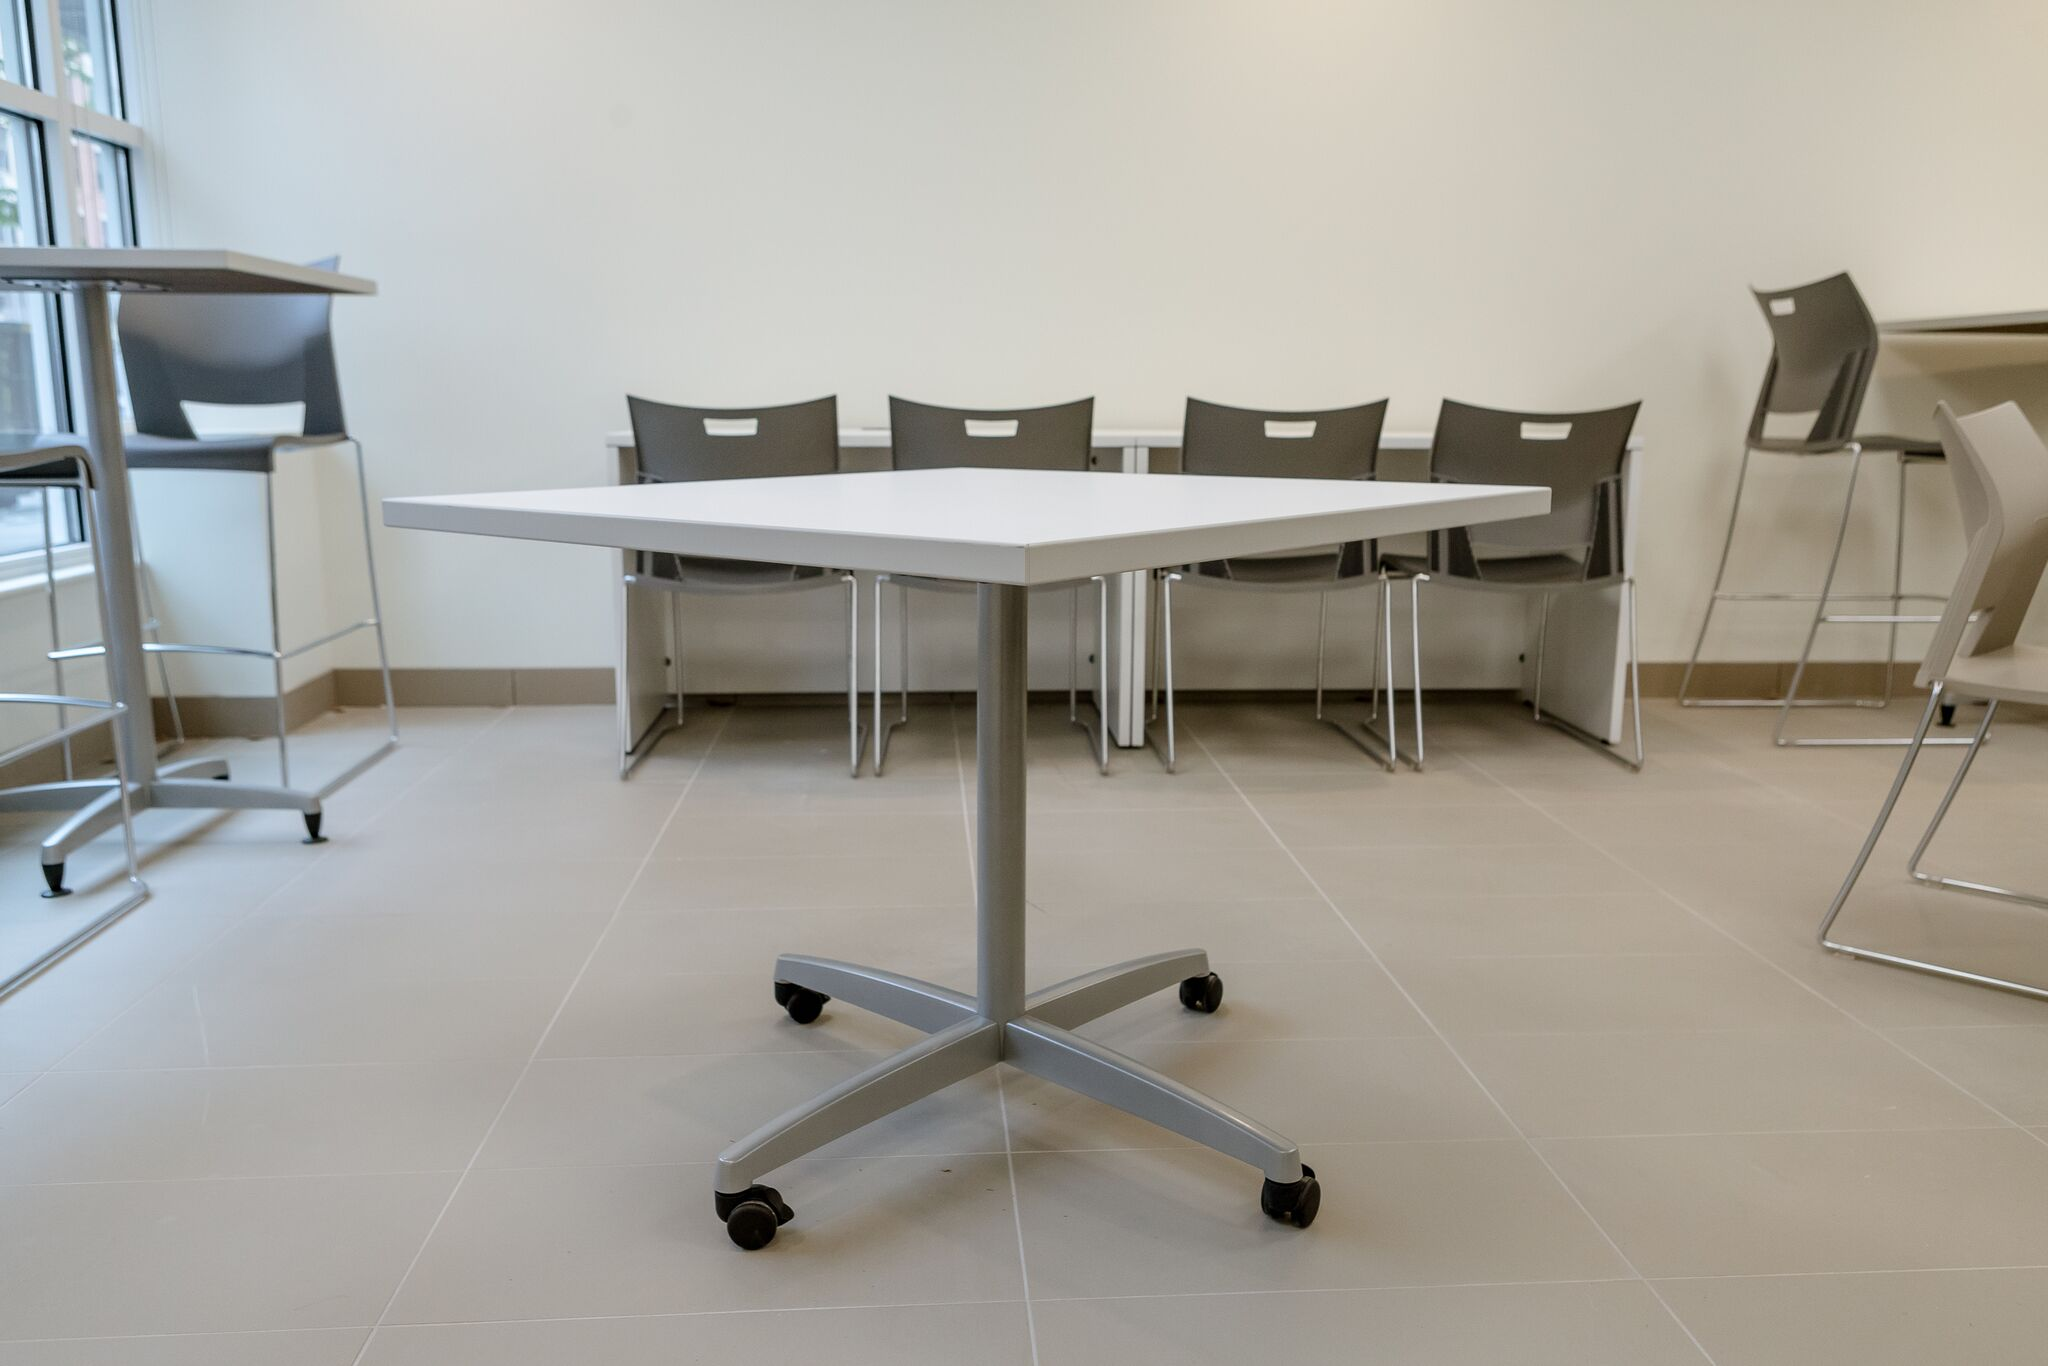 36x36 Laminate Top Table Silver Prep Base with Casters